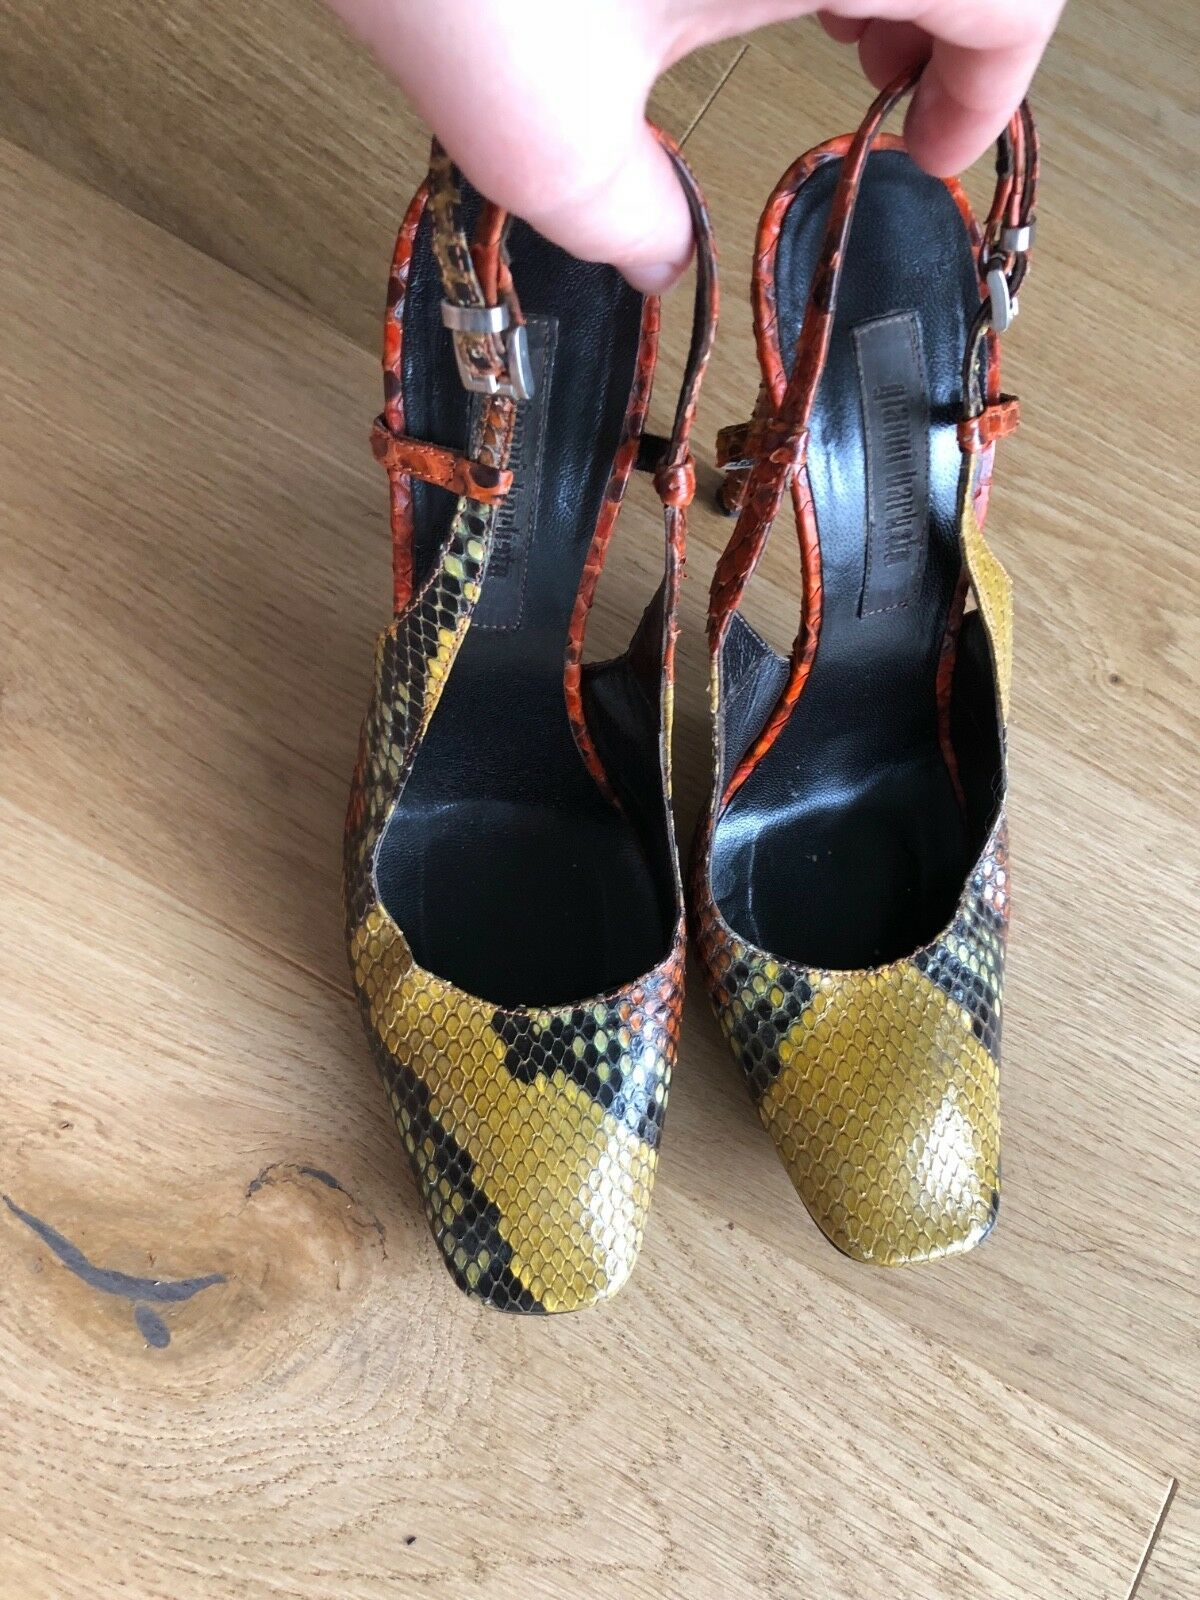 Gianni Barbato, Gr.38 Echtes Leder( reptil) Pumps High heels Damen Schuhe